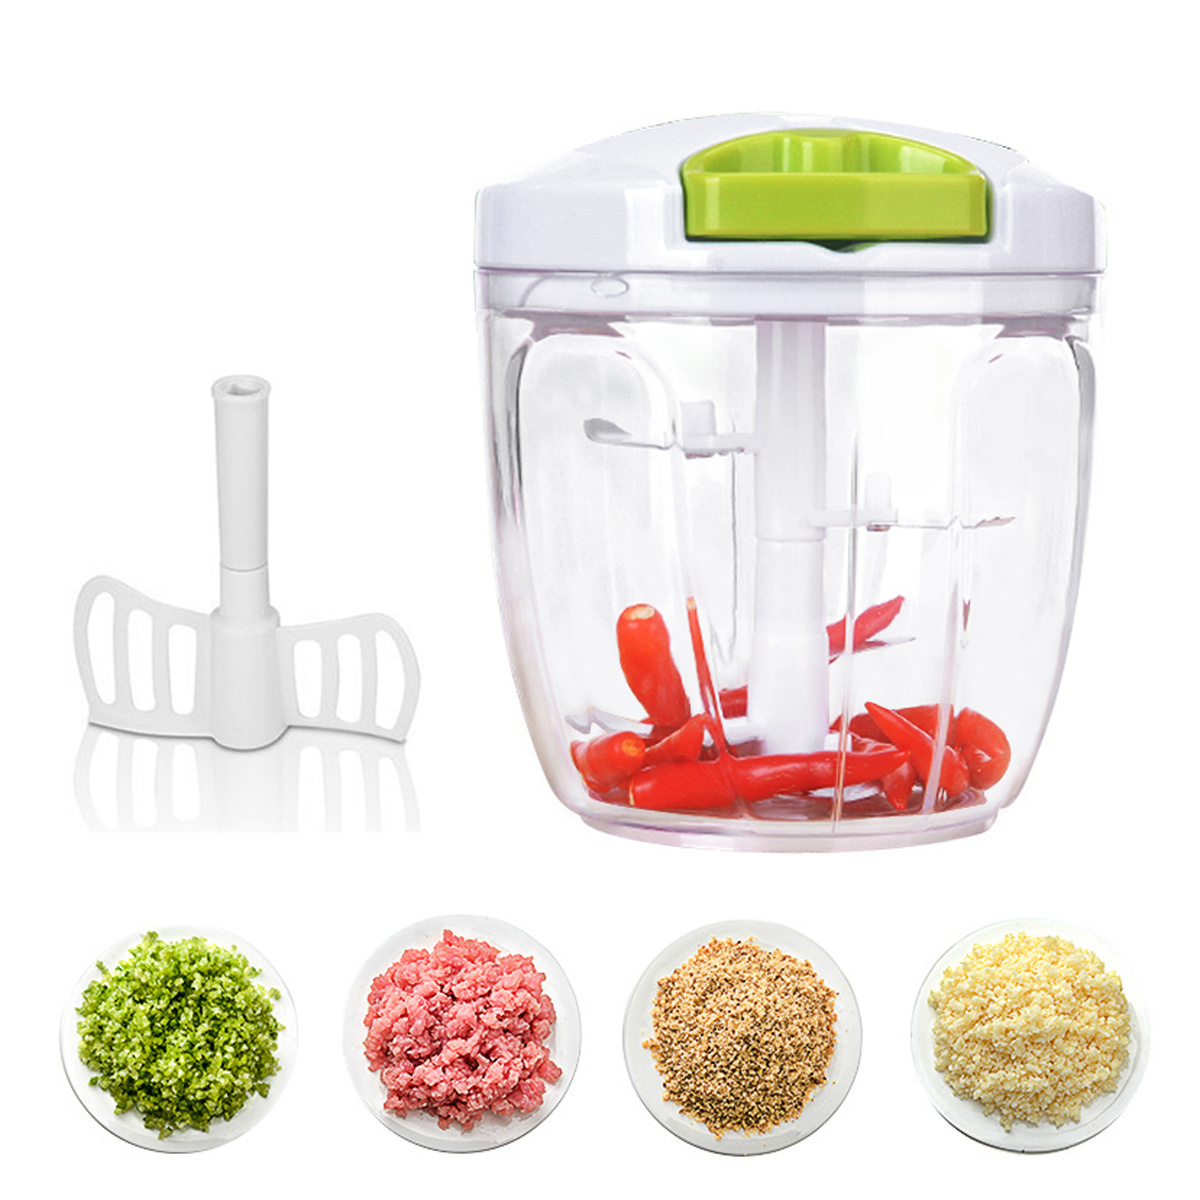 �BIG SALE!�Manual Food Chopper Processor Blender with 5 Sharp Blades & 900ml for Vegetables, Fruit, Nuts,... by